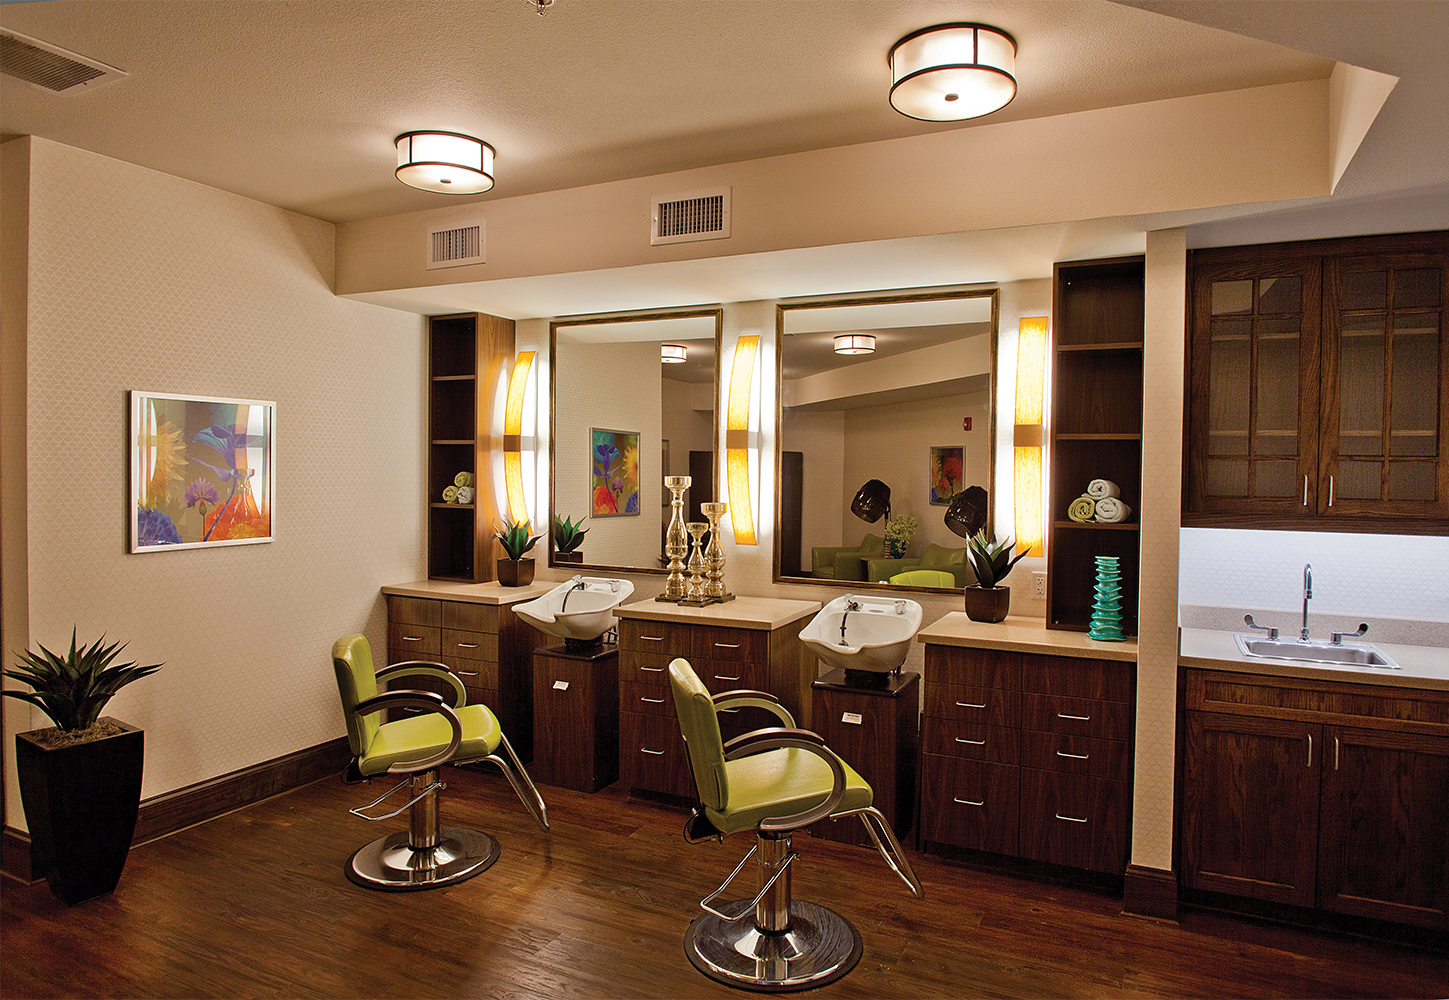 Bowe as a pleasing vanity light fixture, mounted vertically between salon mirrors, with Capitol ceiling luminaires.